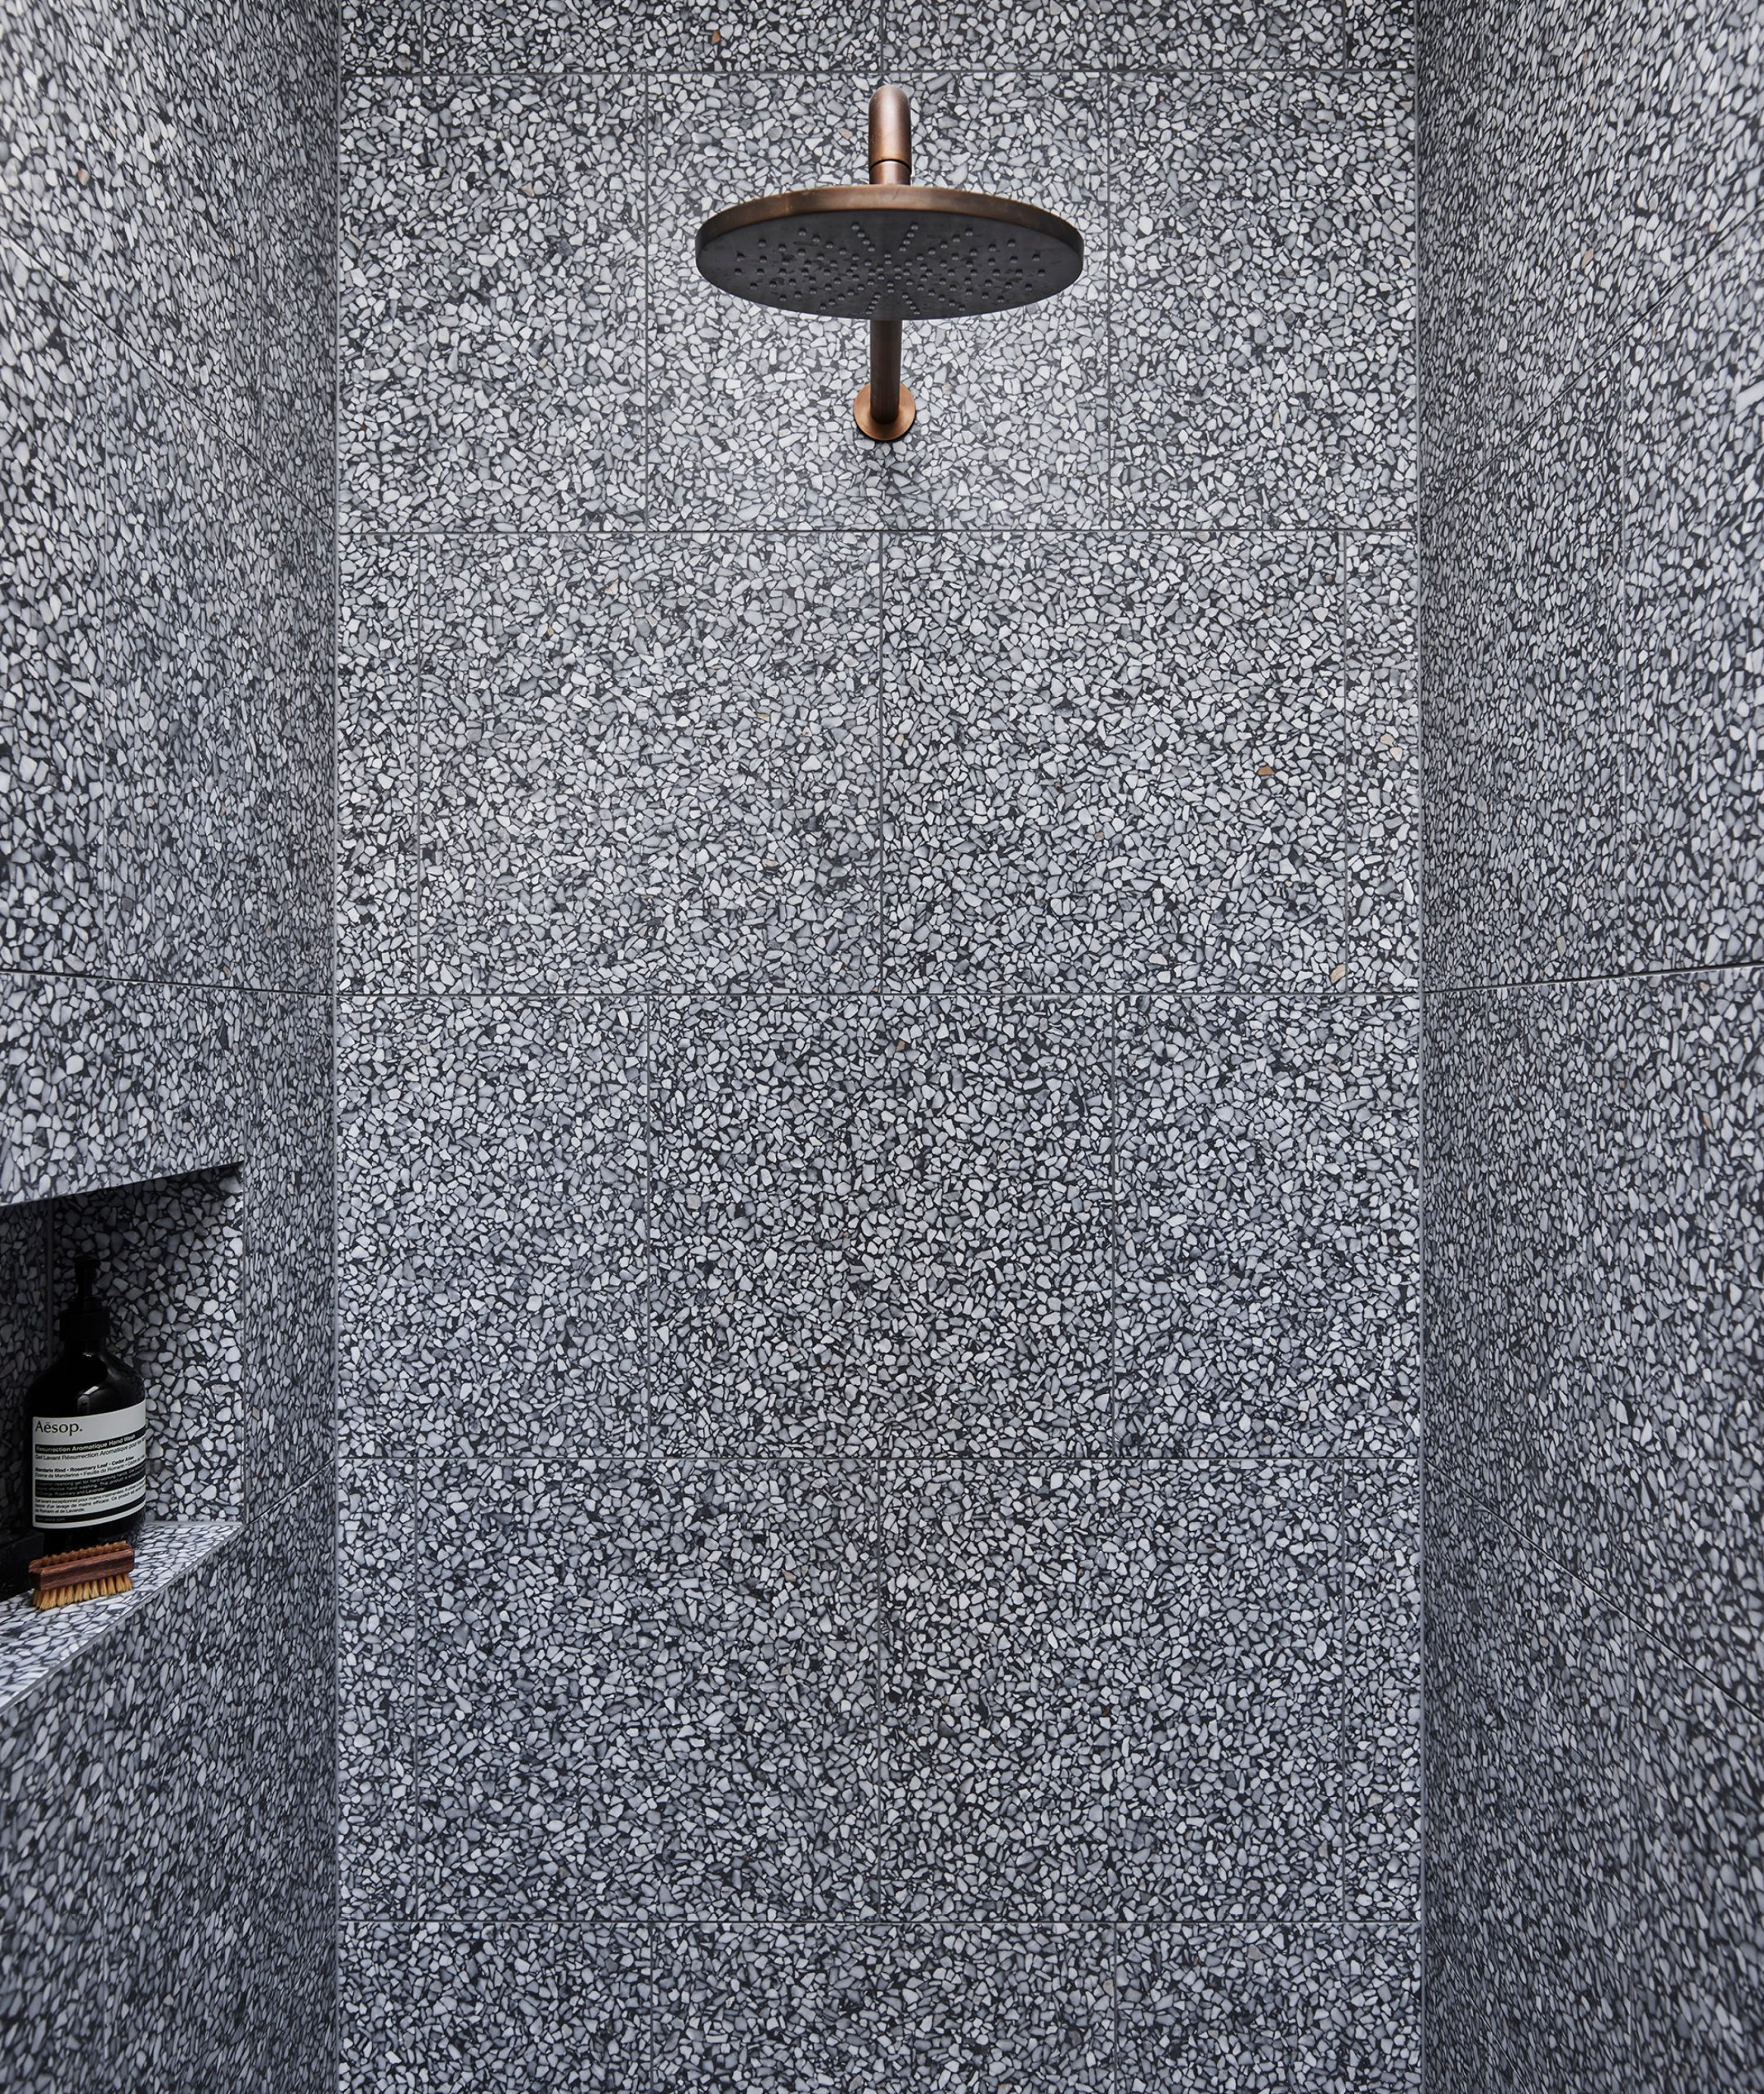 Black & grey textured shower